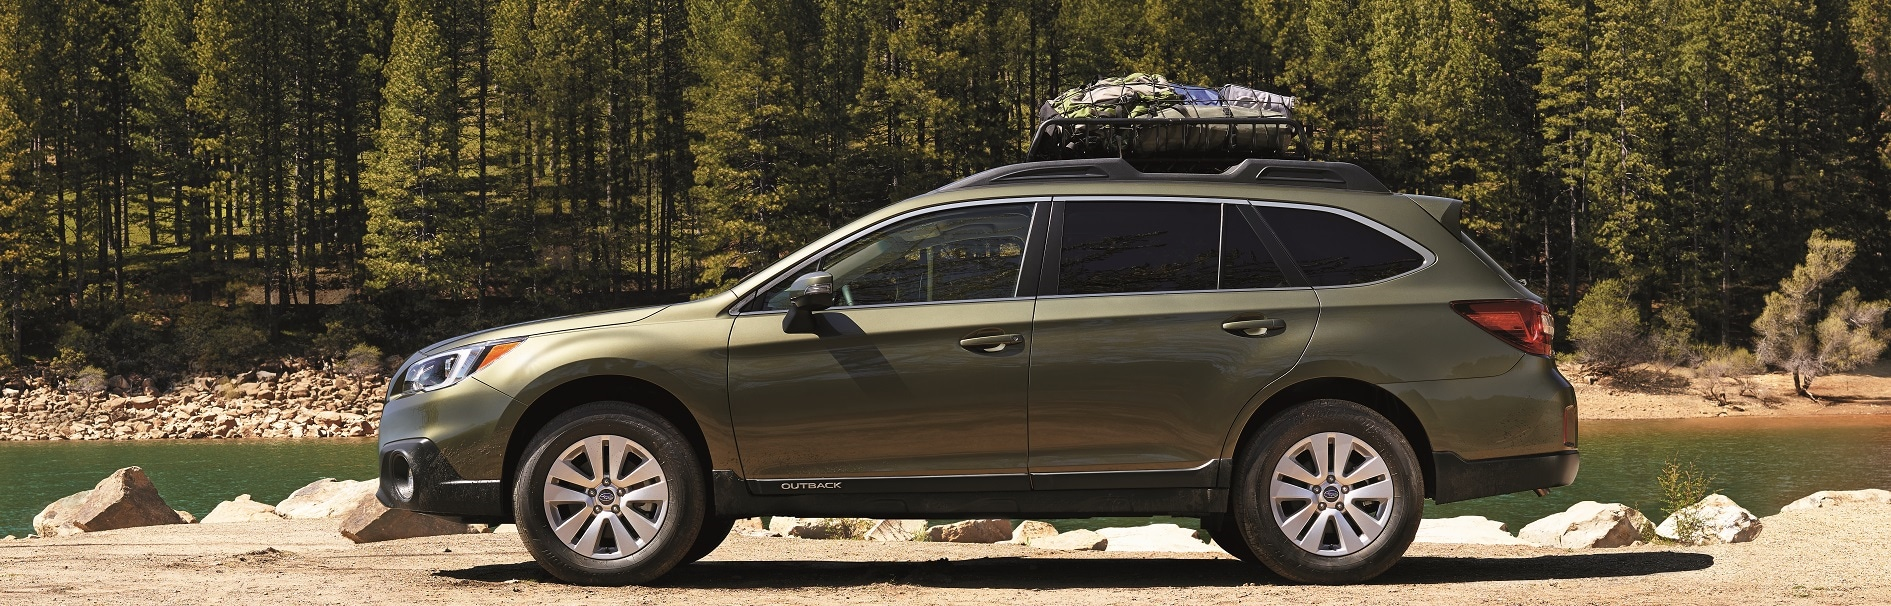 Compare 2017 Subaru Outback Trim Levels